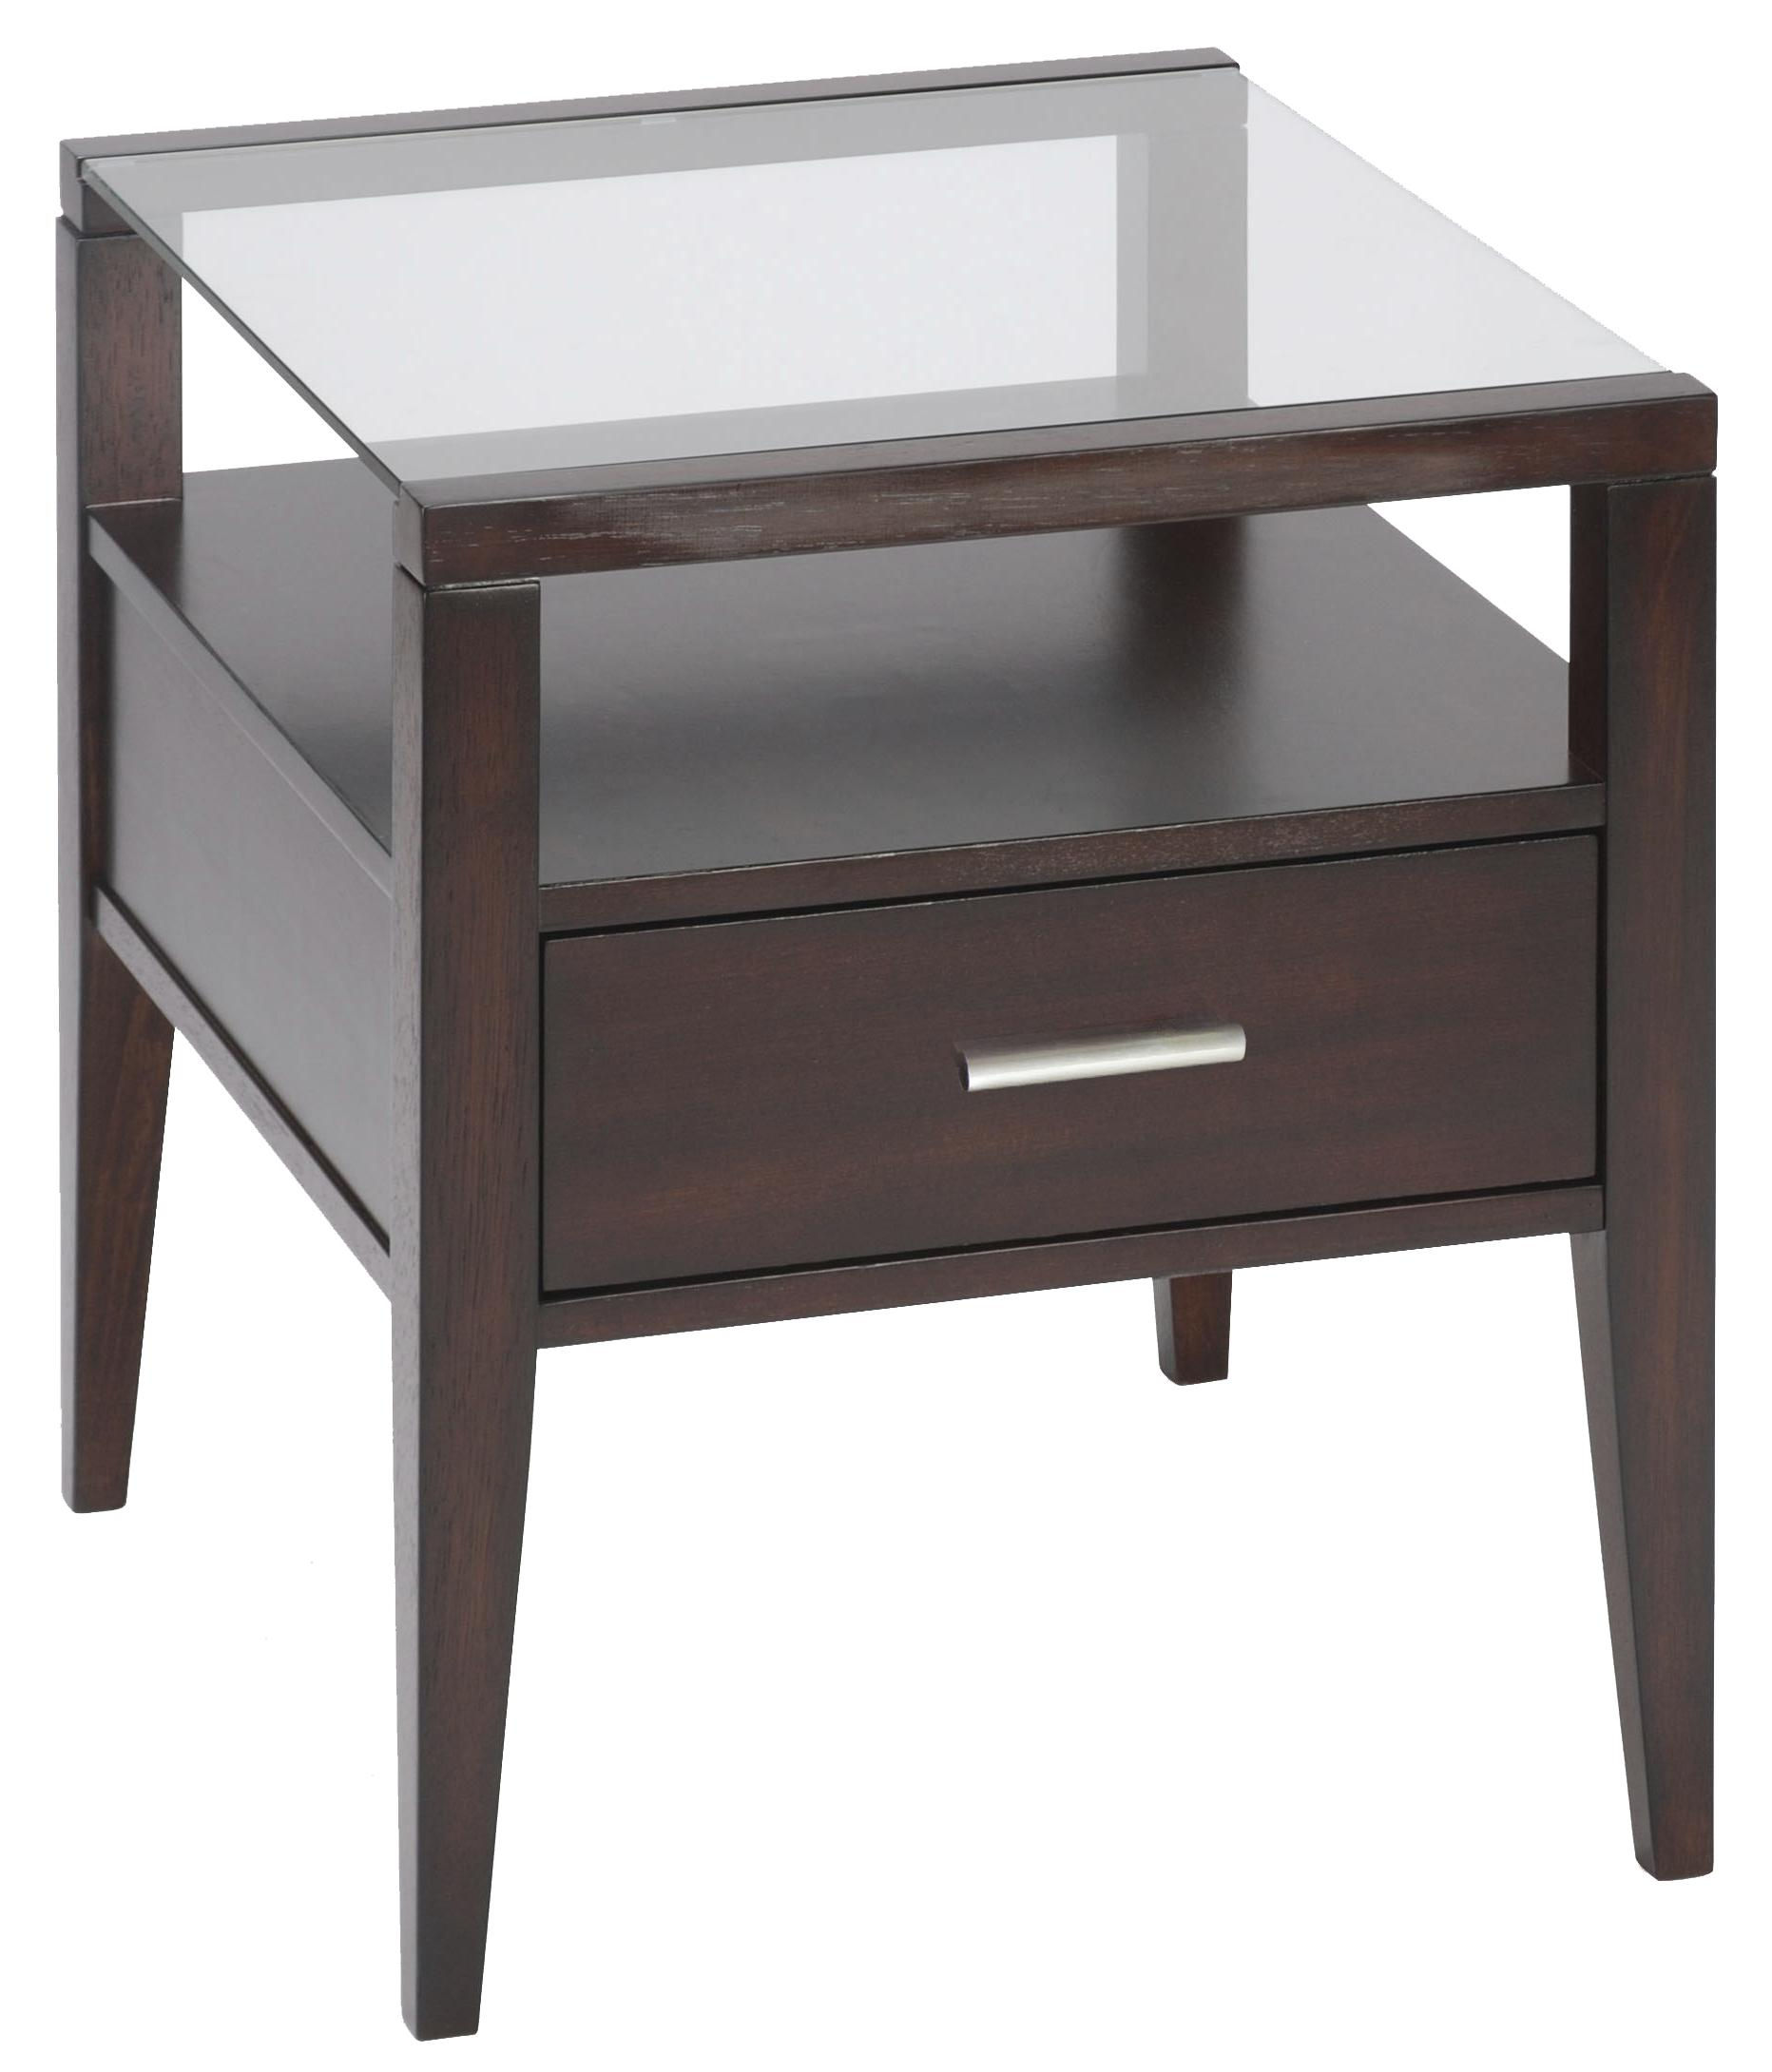 Magnussen Home Baker Contemporary End Table With Drawer Sheely 39 S Furniture Appliance End Table